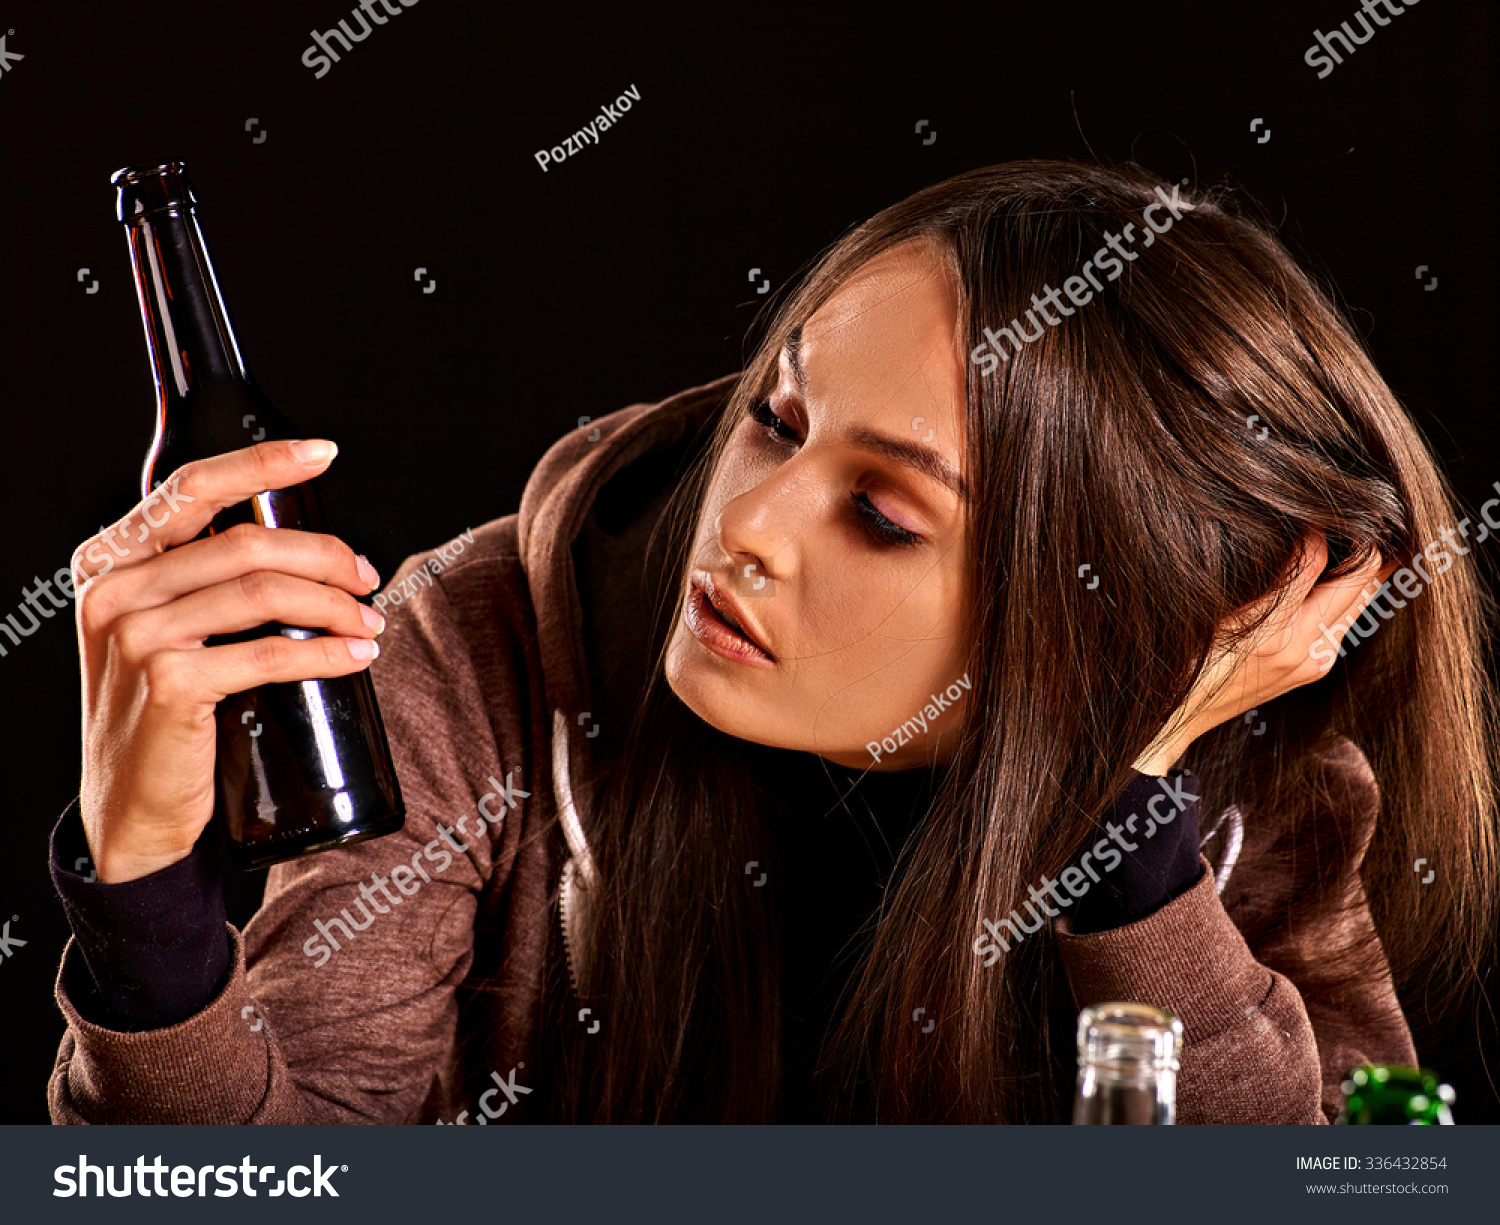 stock-photo-drunk-girl-looking-at-bottle